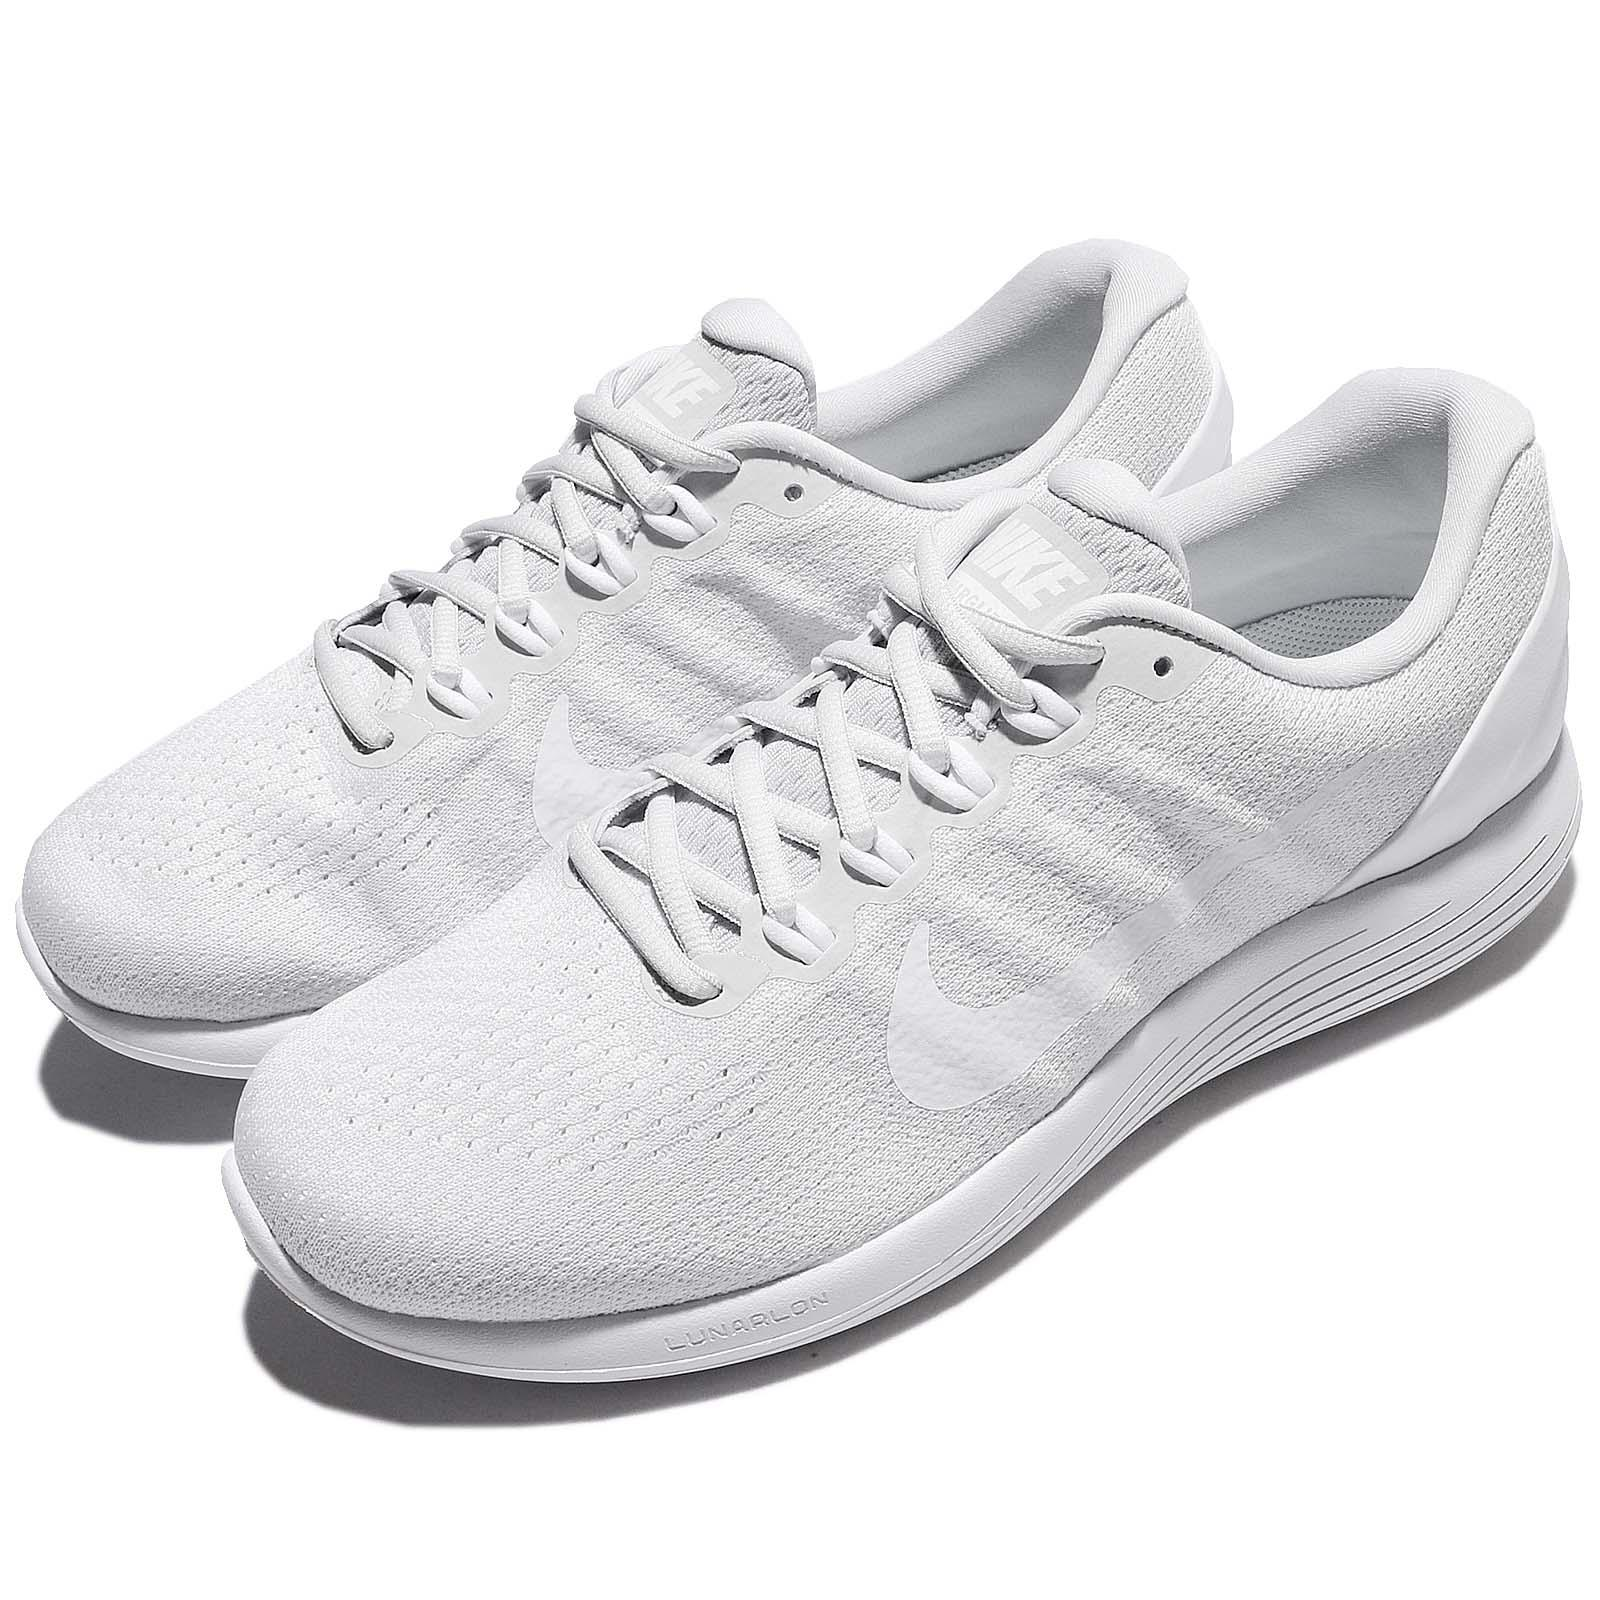 290c3f0017e Details about Nike Lunarglide 9 IX Platinum White Men Running Shoes Sneakers  904715-003